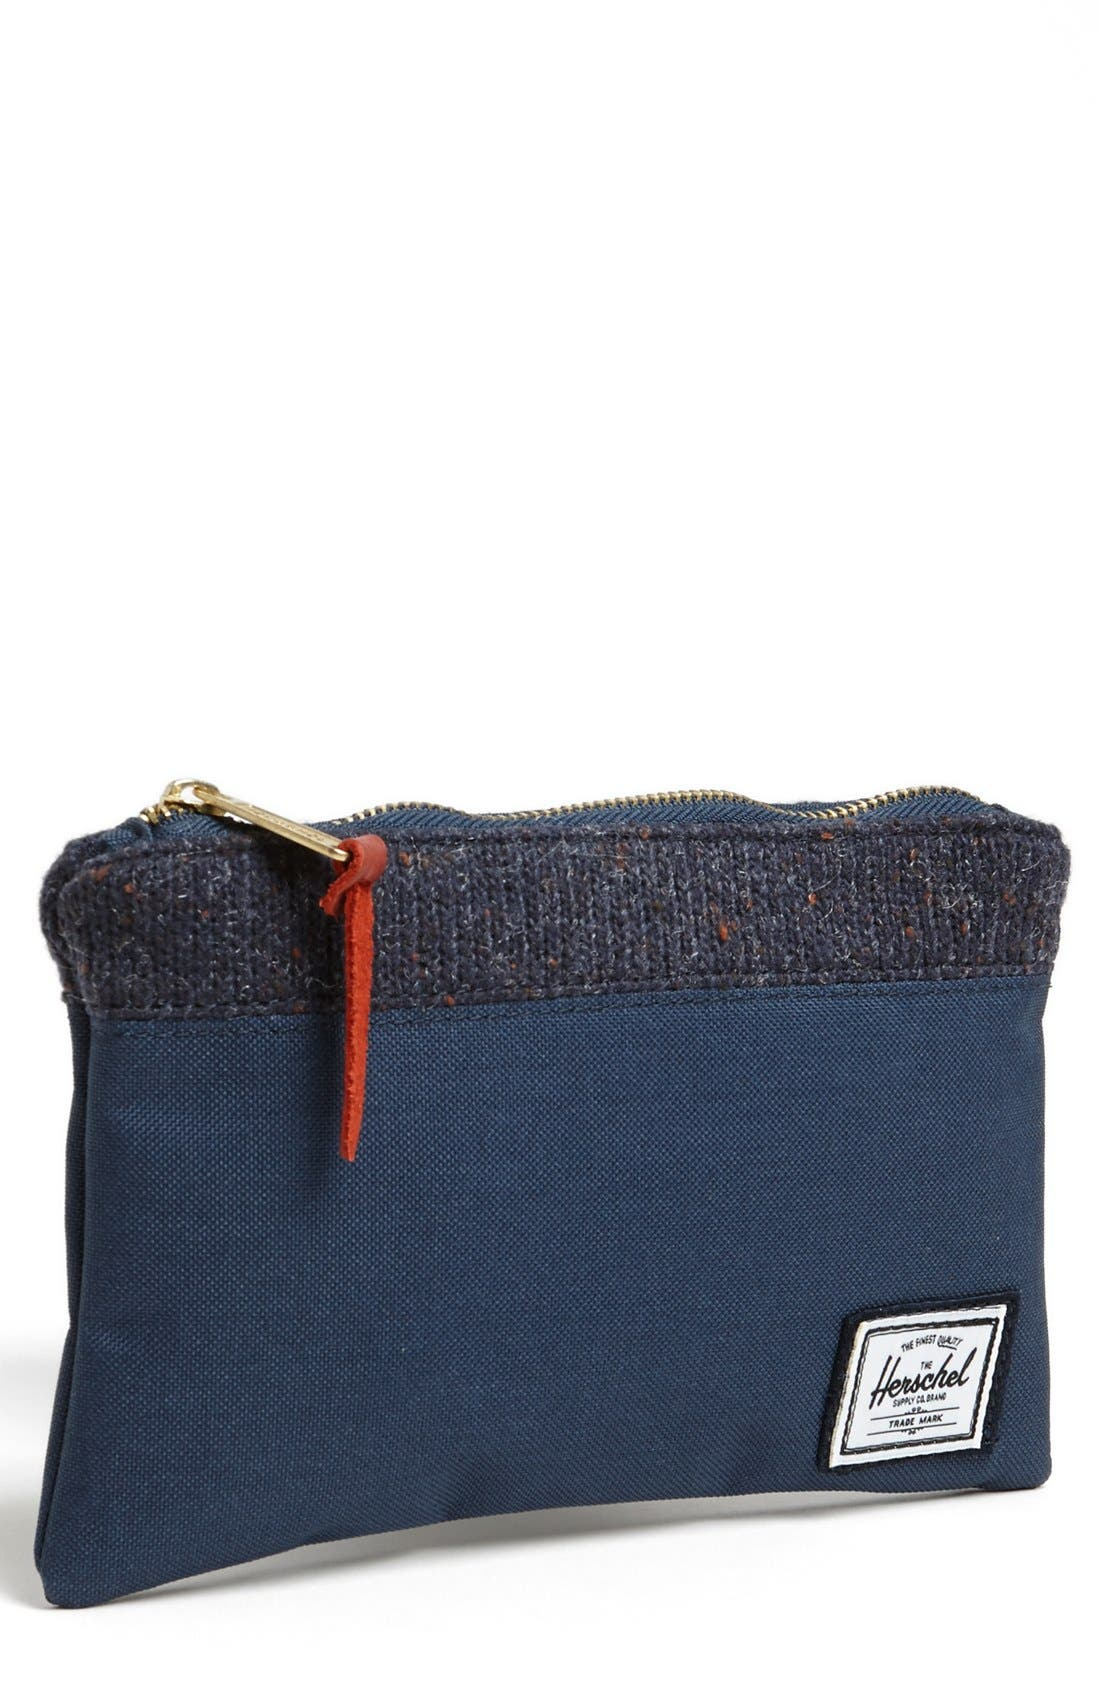 Alternate Image 1 Selected - Herschel Supply Co. Knit Trim Field Pouch